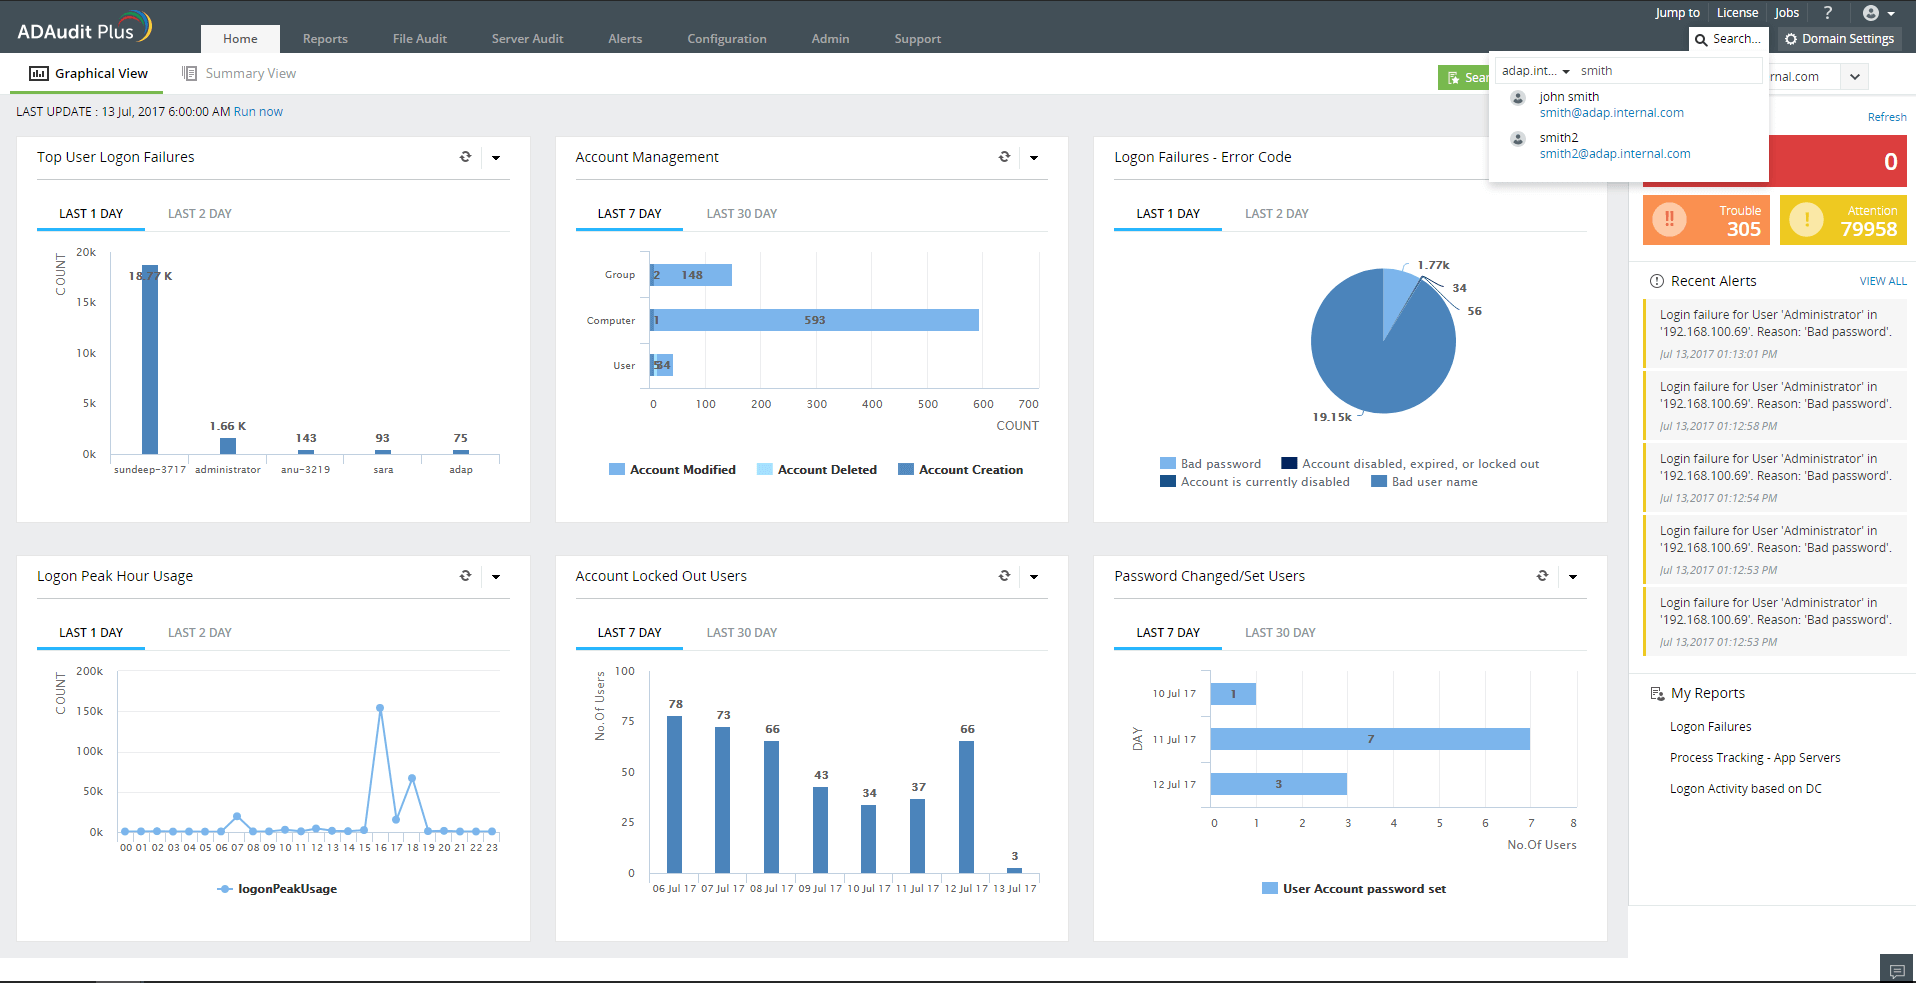 aggregate-reports-user-management-reports-dashboard-view